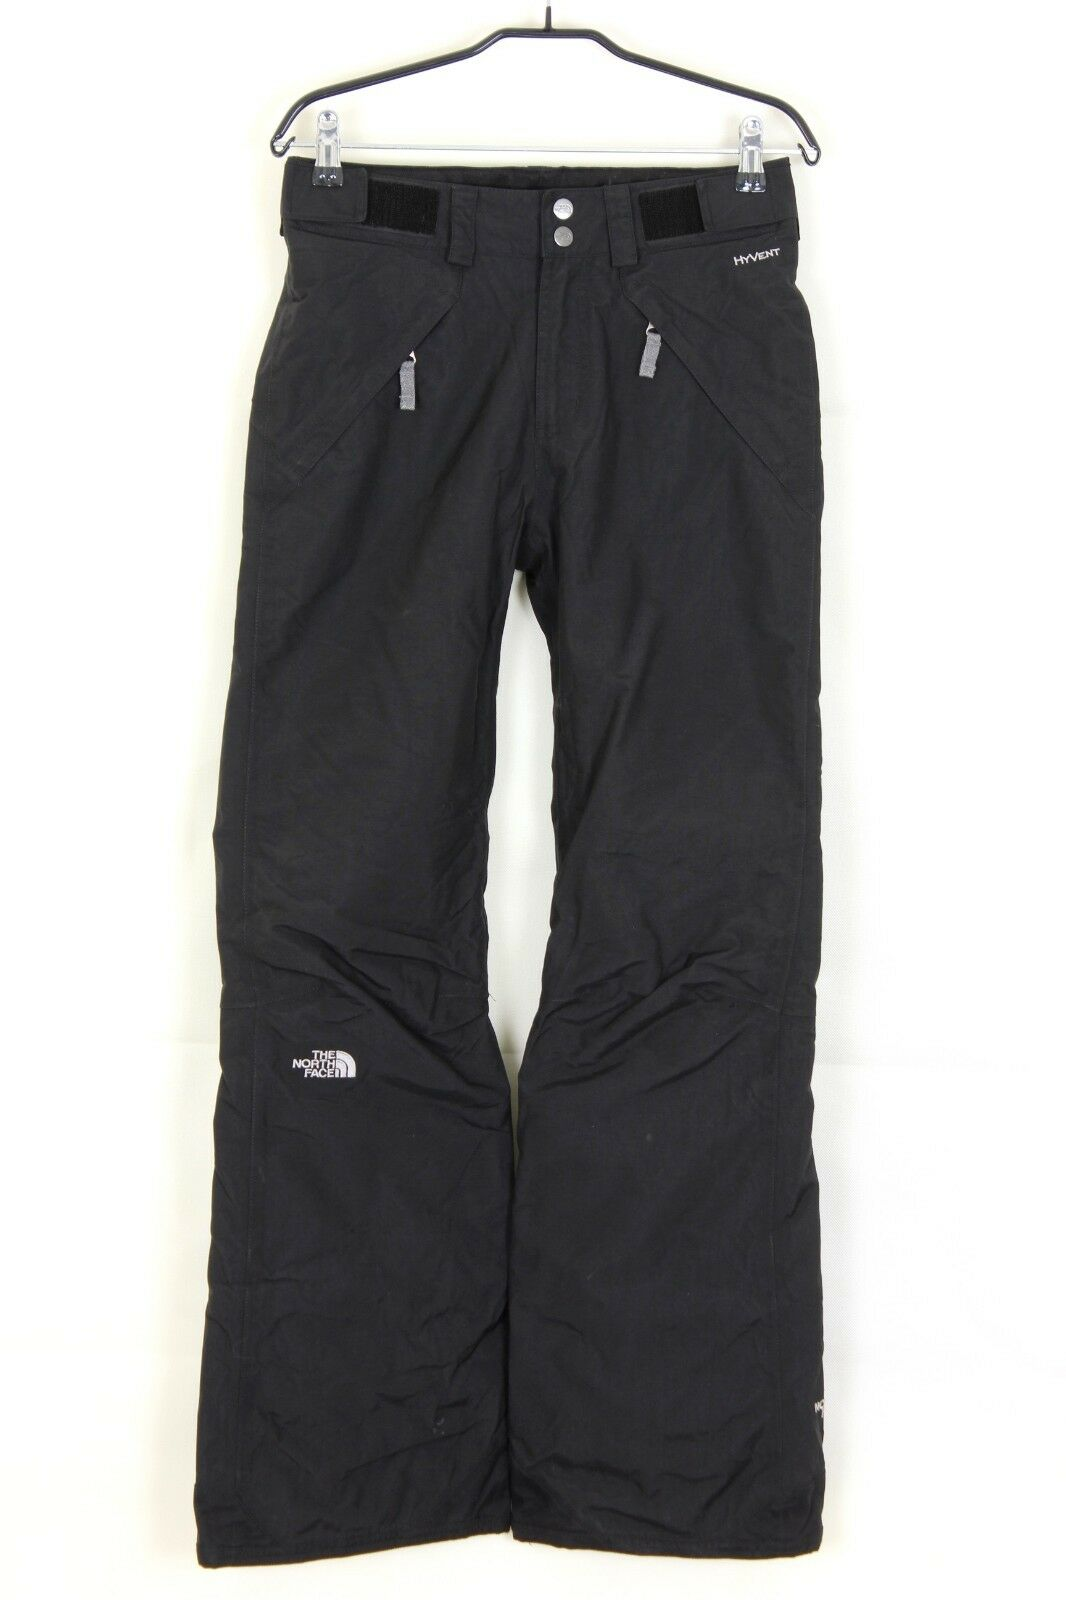 THE NORTH FACE HYVENT Women Ski Snowboarding Padded Pants Trousers Size XS MJ727